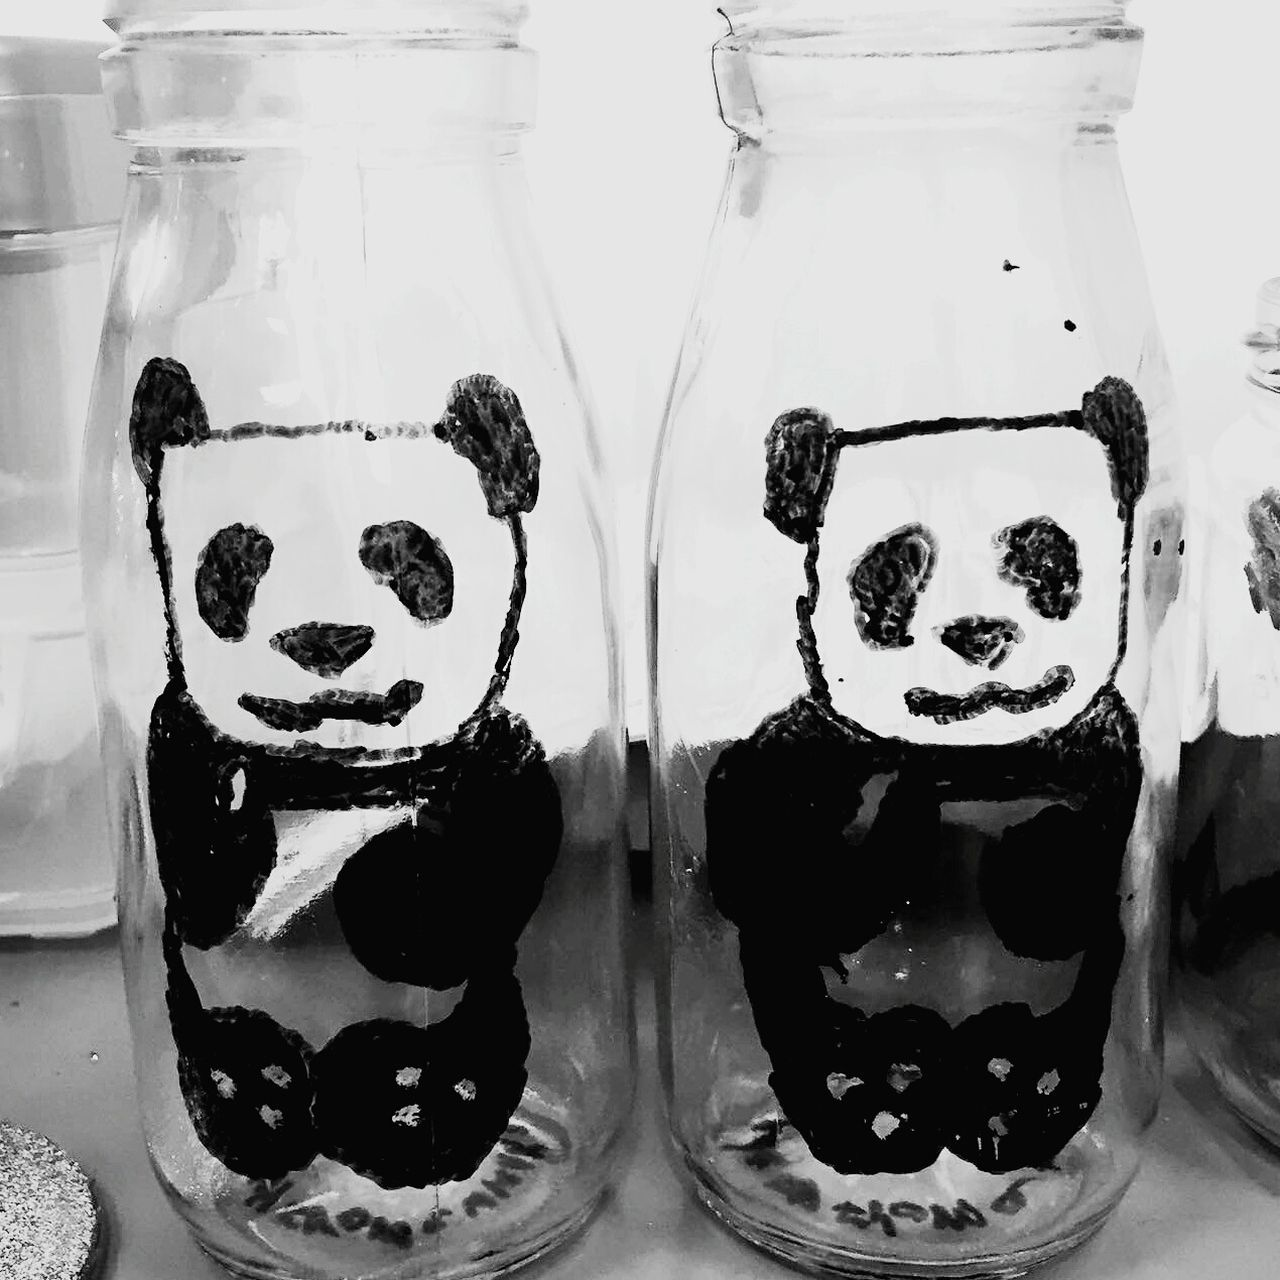 Panda Milkbottles Art Handmade Drawnbymouth Blackandwhite Pandamilkbottles Check This Out Art Fromablankcanvas Smallbusiness